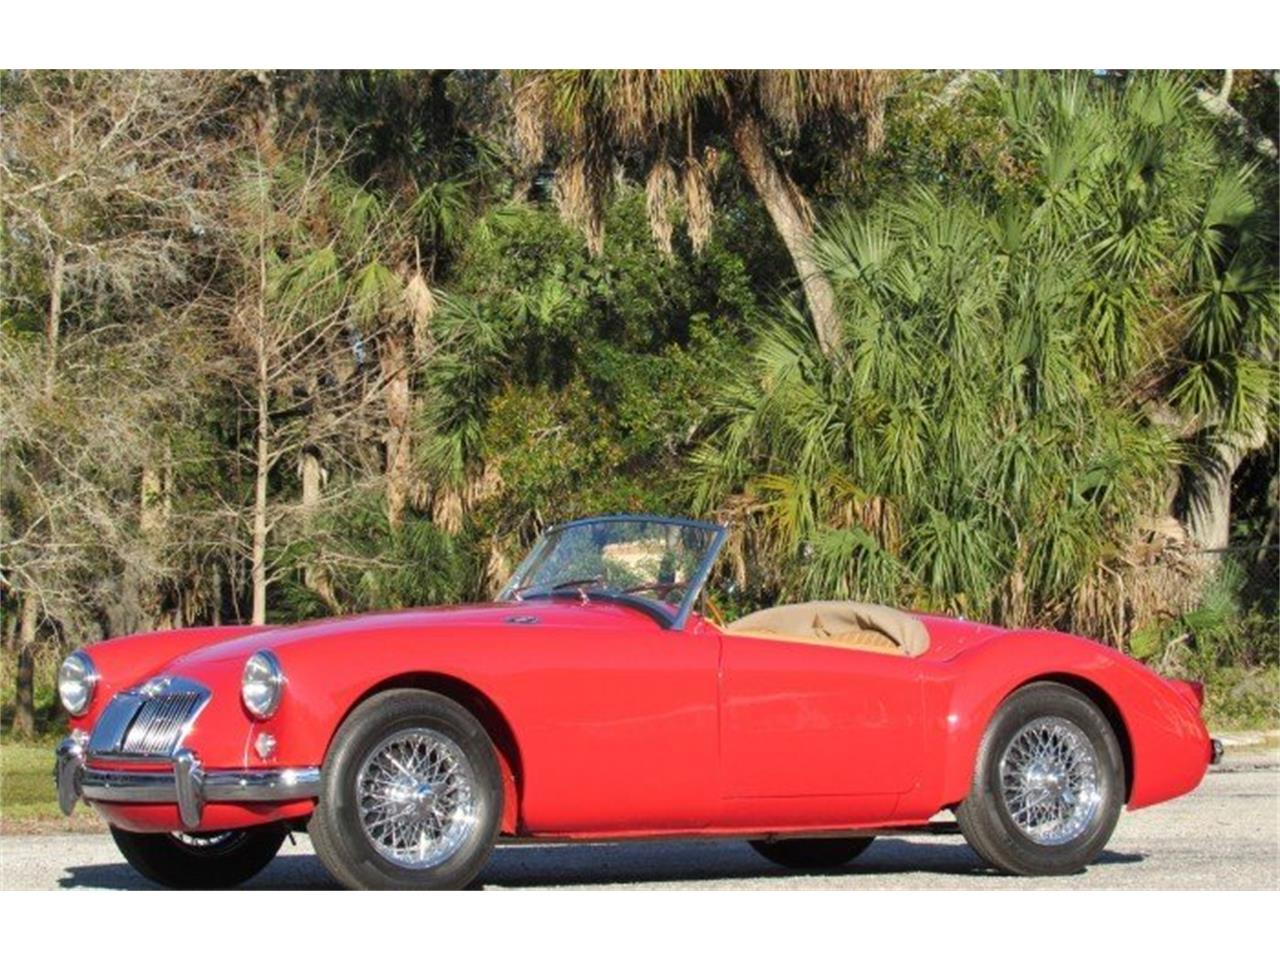 Large Picture of '57 MG MGA Auction Vehicle Offered by Premier Auction Group - PH10